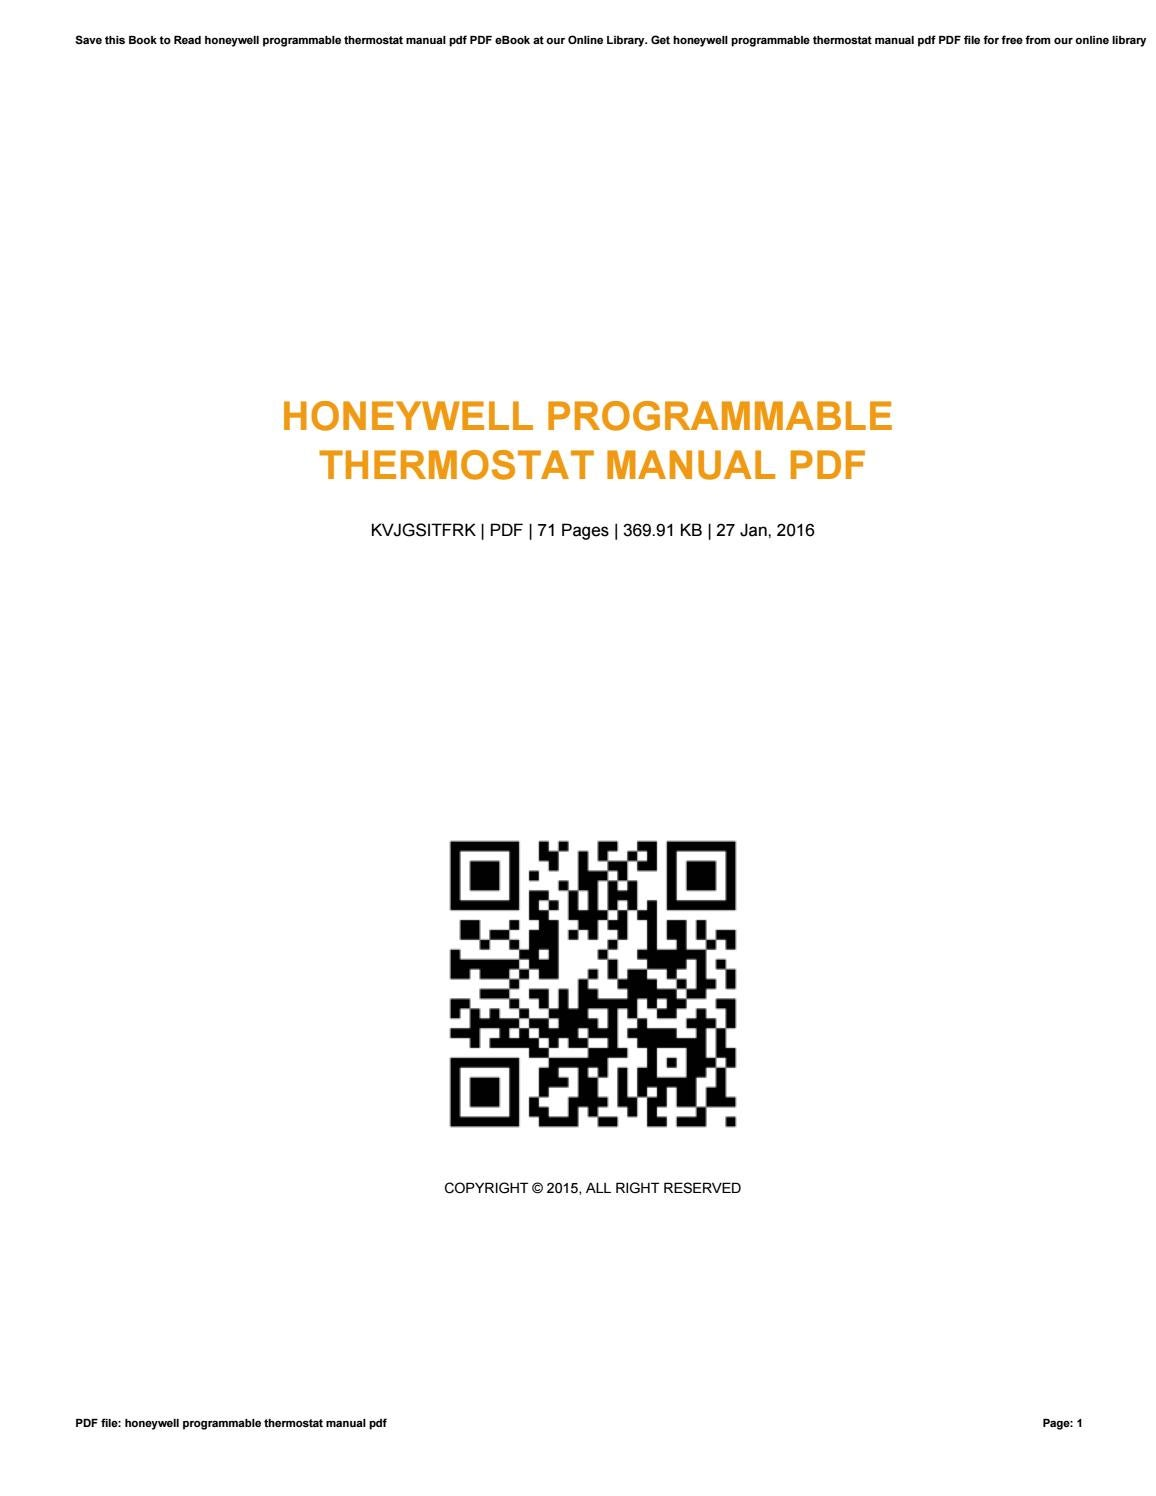 Honeywell programmable thermostat manual pdf by